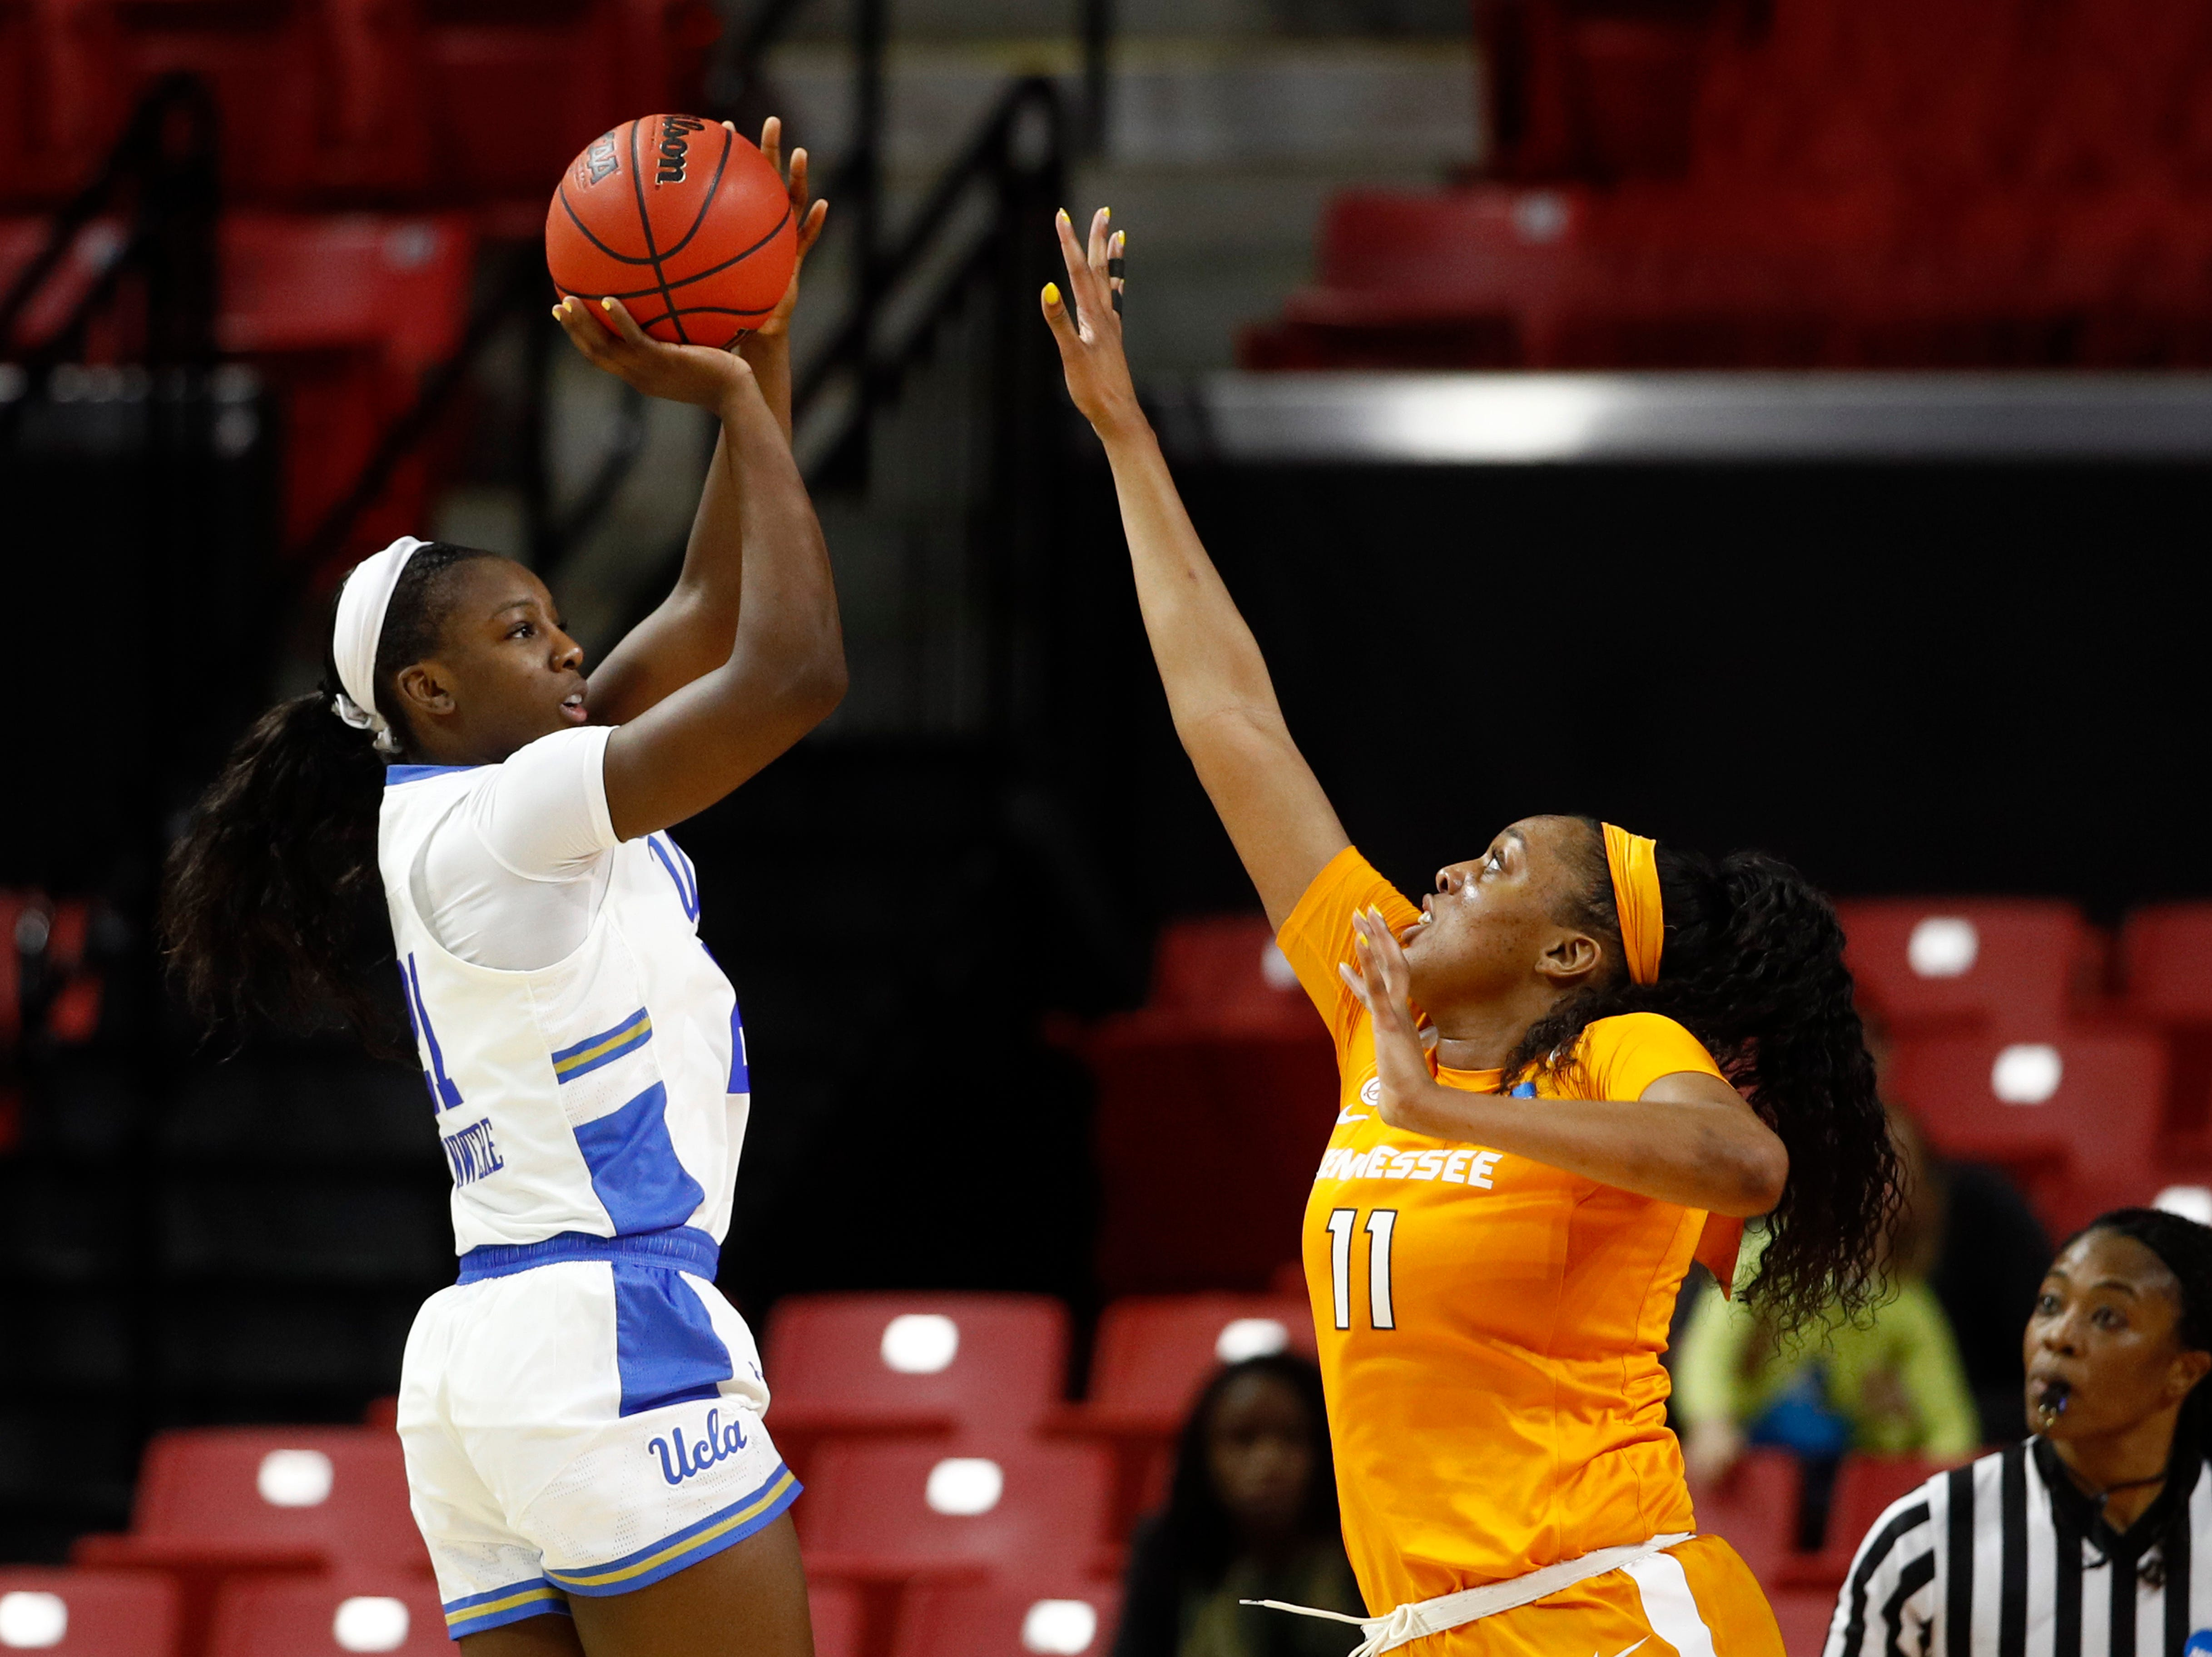 UCLA forward Michaela Onyenwere, left, shoots over Tennessee center Kasiyahna Kushkituah in the second half of a first-round game in the NCAA women's college basketball tournament, Saturday, March 23, 2019, in College Park, Md. Onyenwere contributed a game-high 22 points im UCLA's 89-77 win.